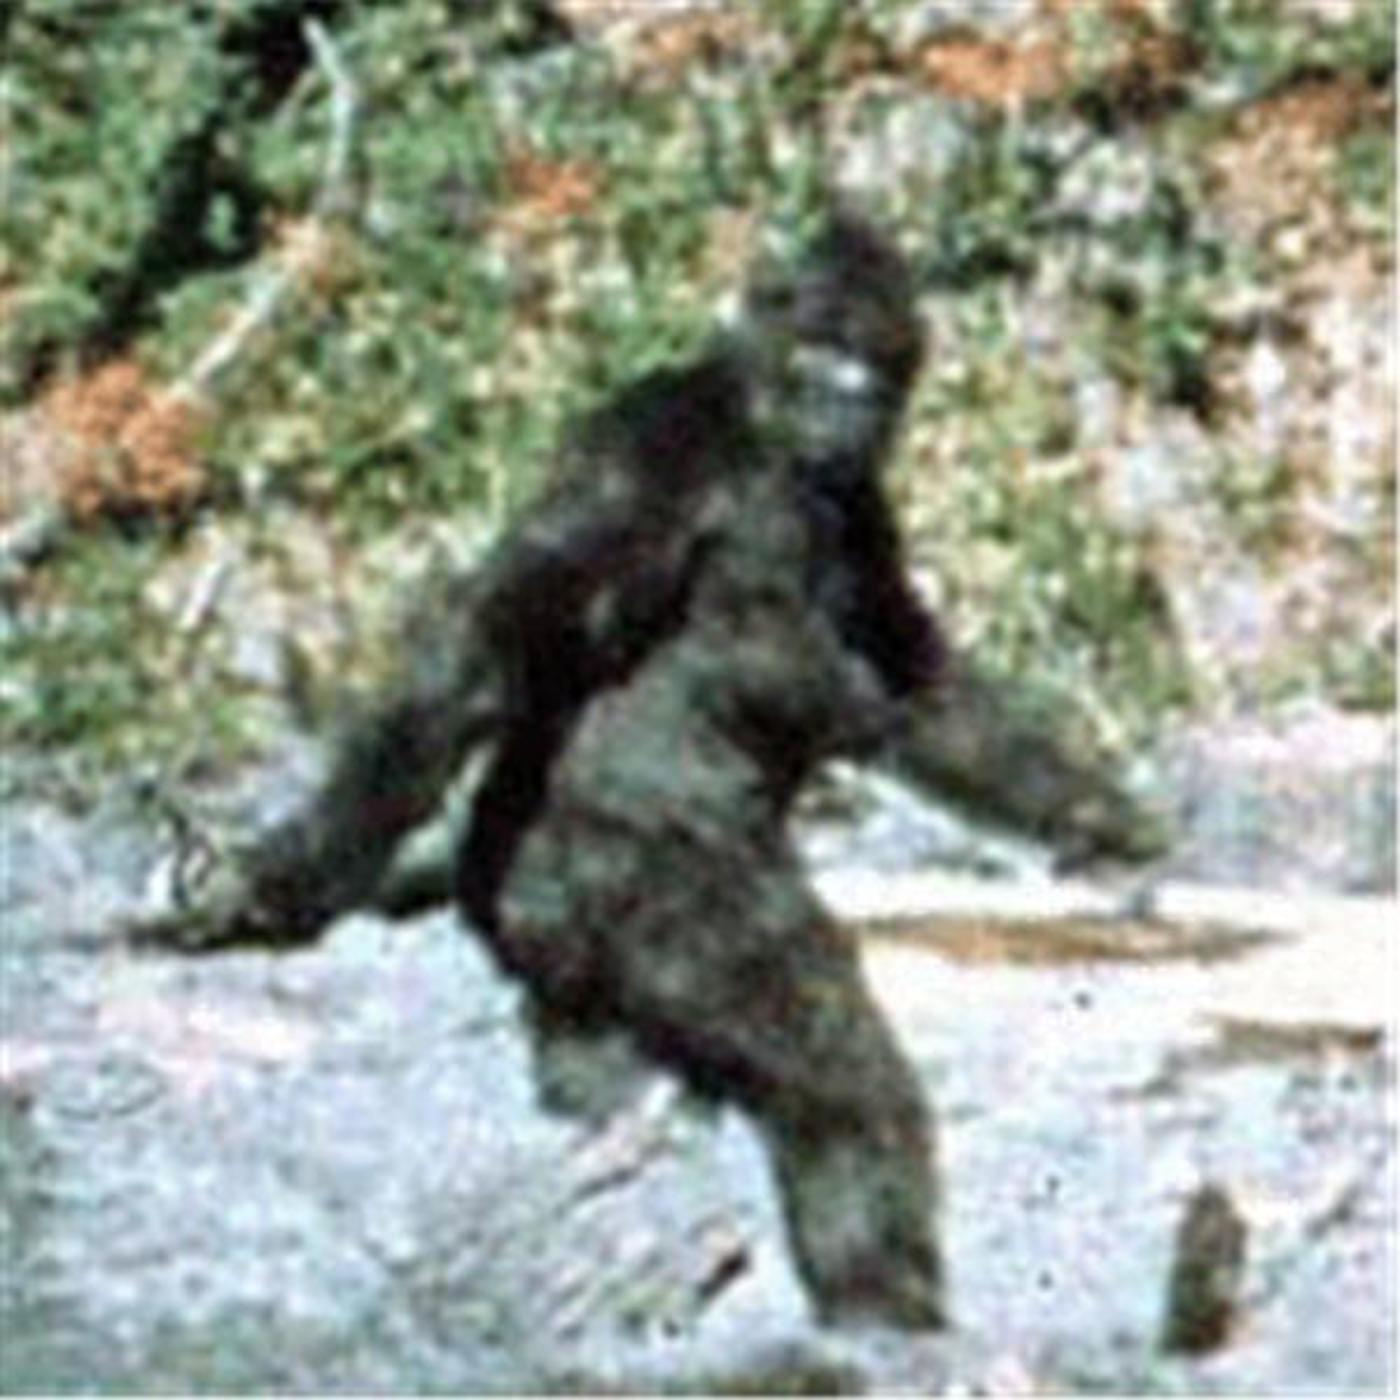 Abduction Scenarios & Bigfoot